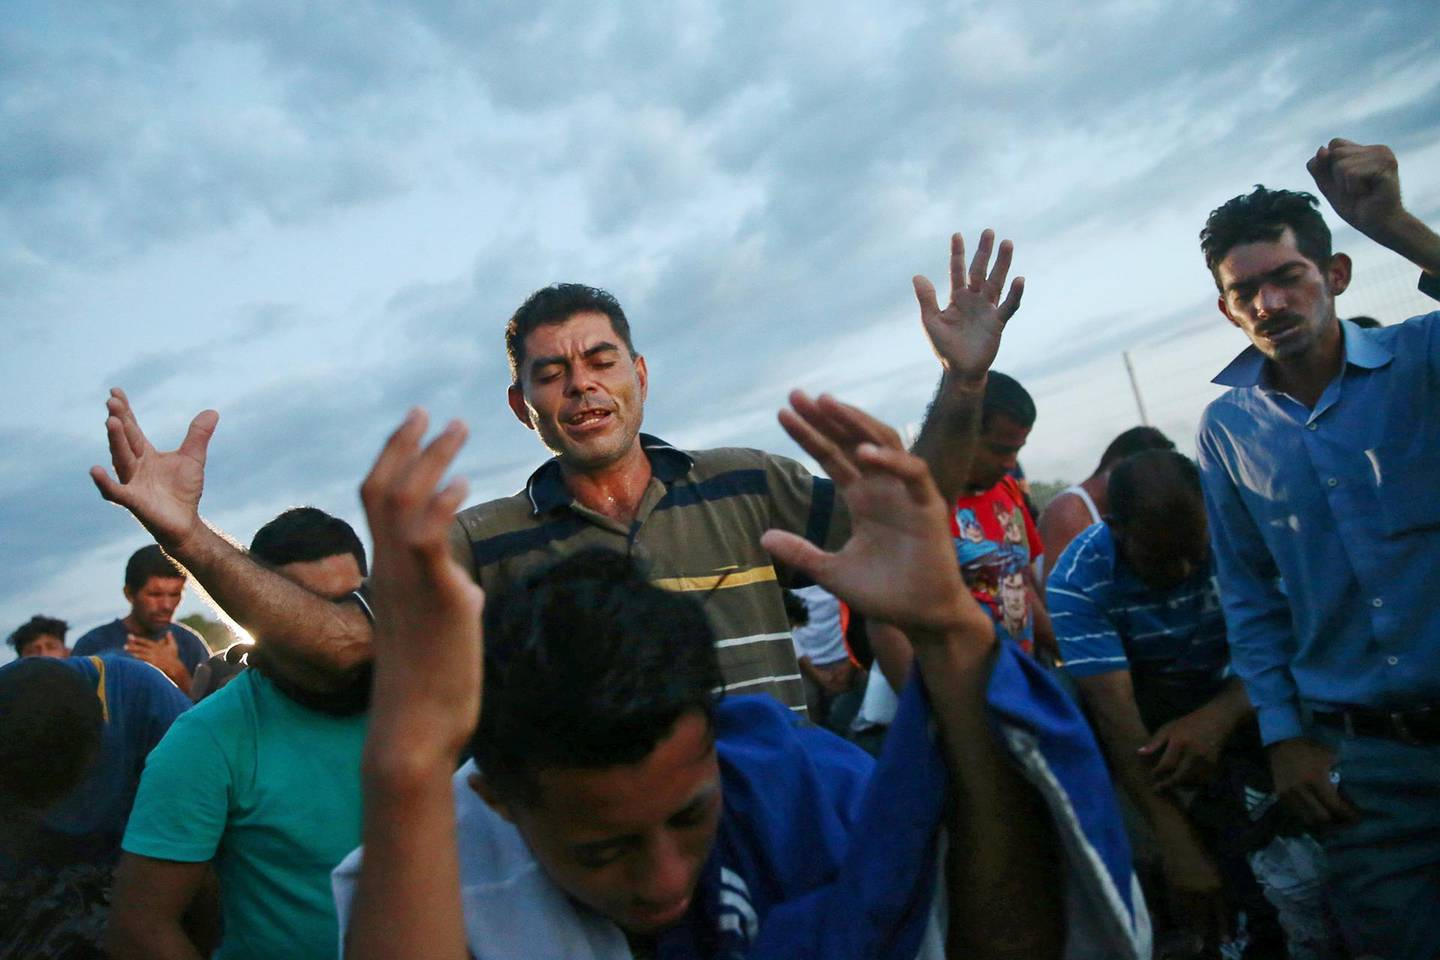 Central American migrants, part of a caravan trying to reach the U.S., pray as they wait on the bridge that connects Mexico and Guatemala to cross into Mexico to continue their trip, in Ciudad Hidalgo, Mexico October 22, 2018. REUTERS/Edgard Garrido